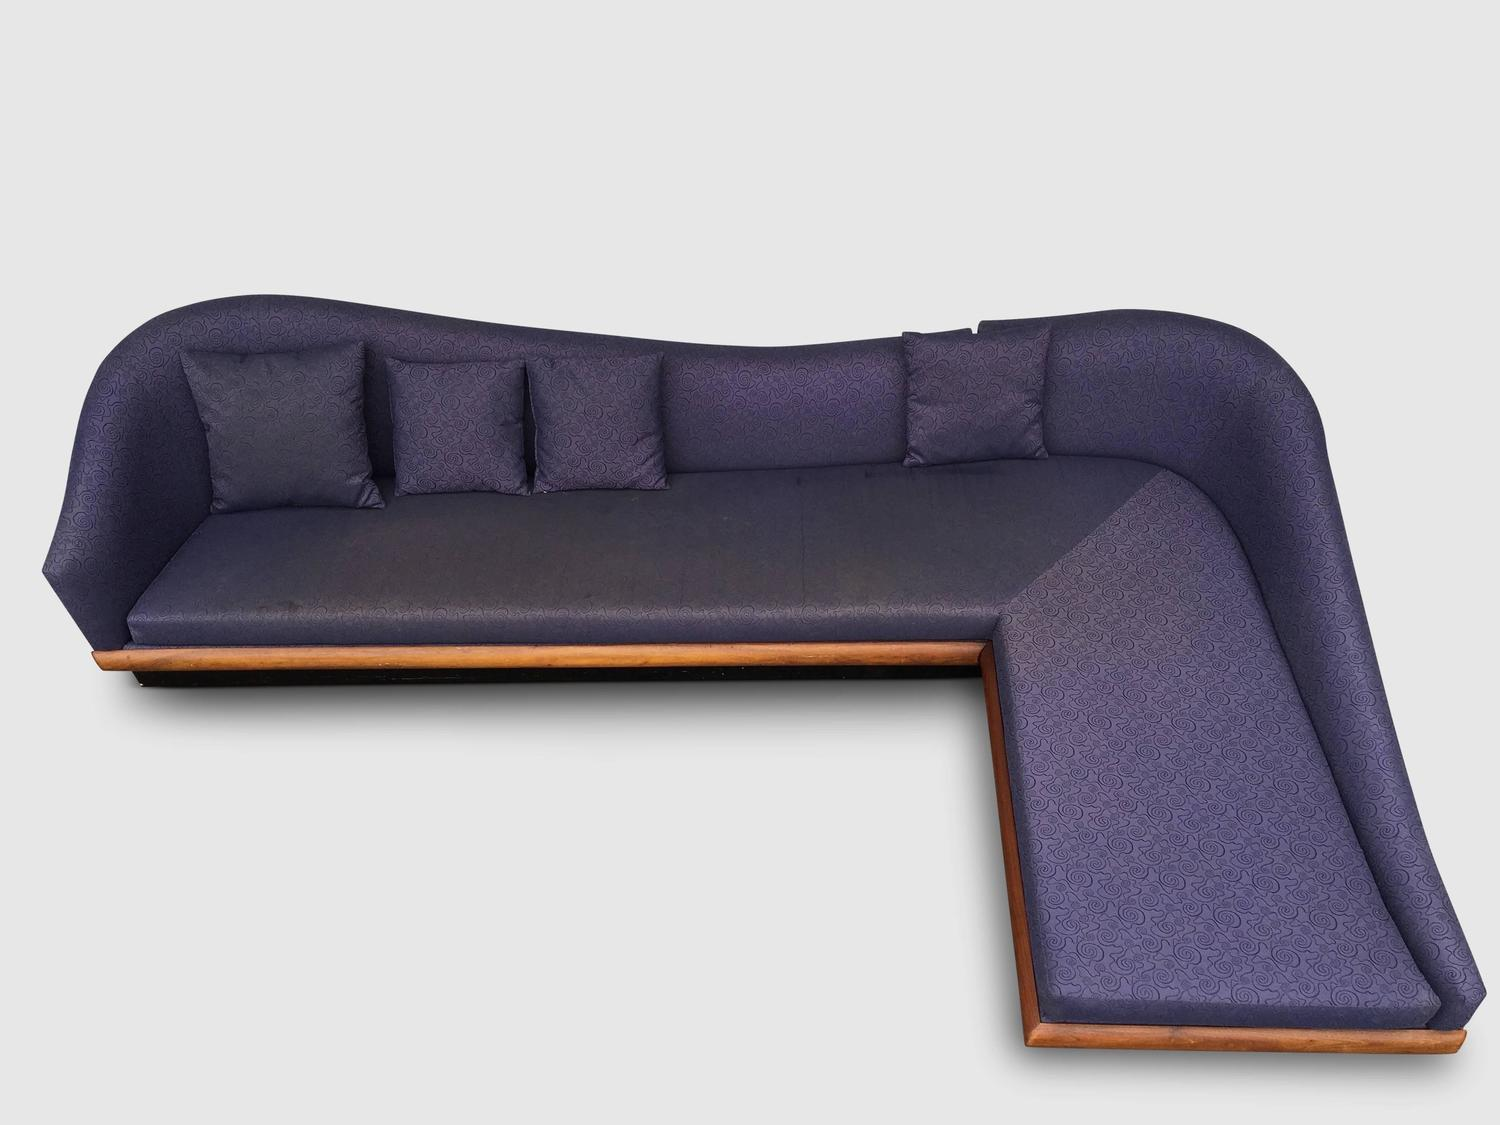 cloud sofa for sale small scale leather adrian pearsall at 1stdibs